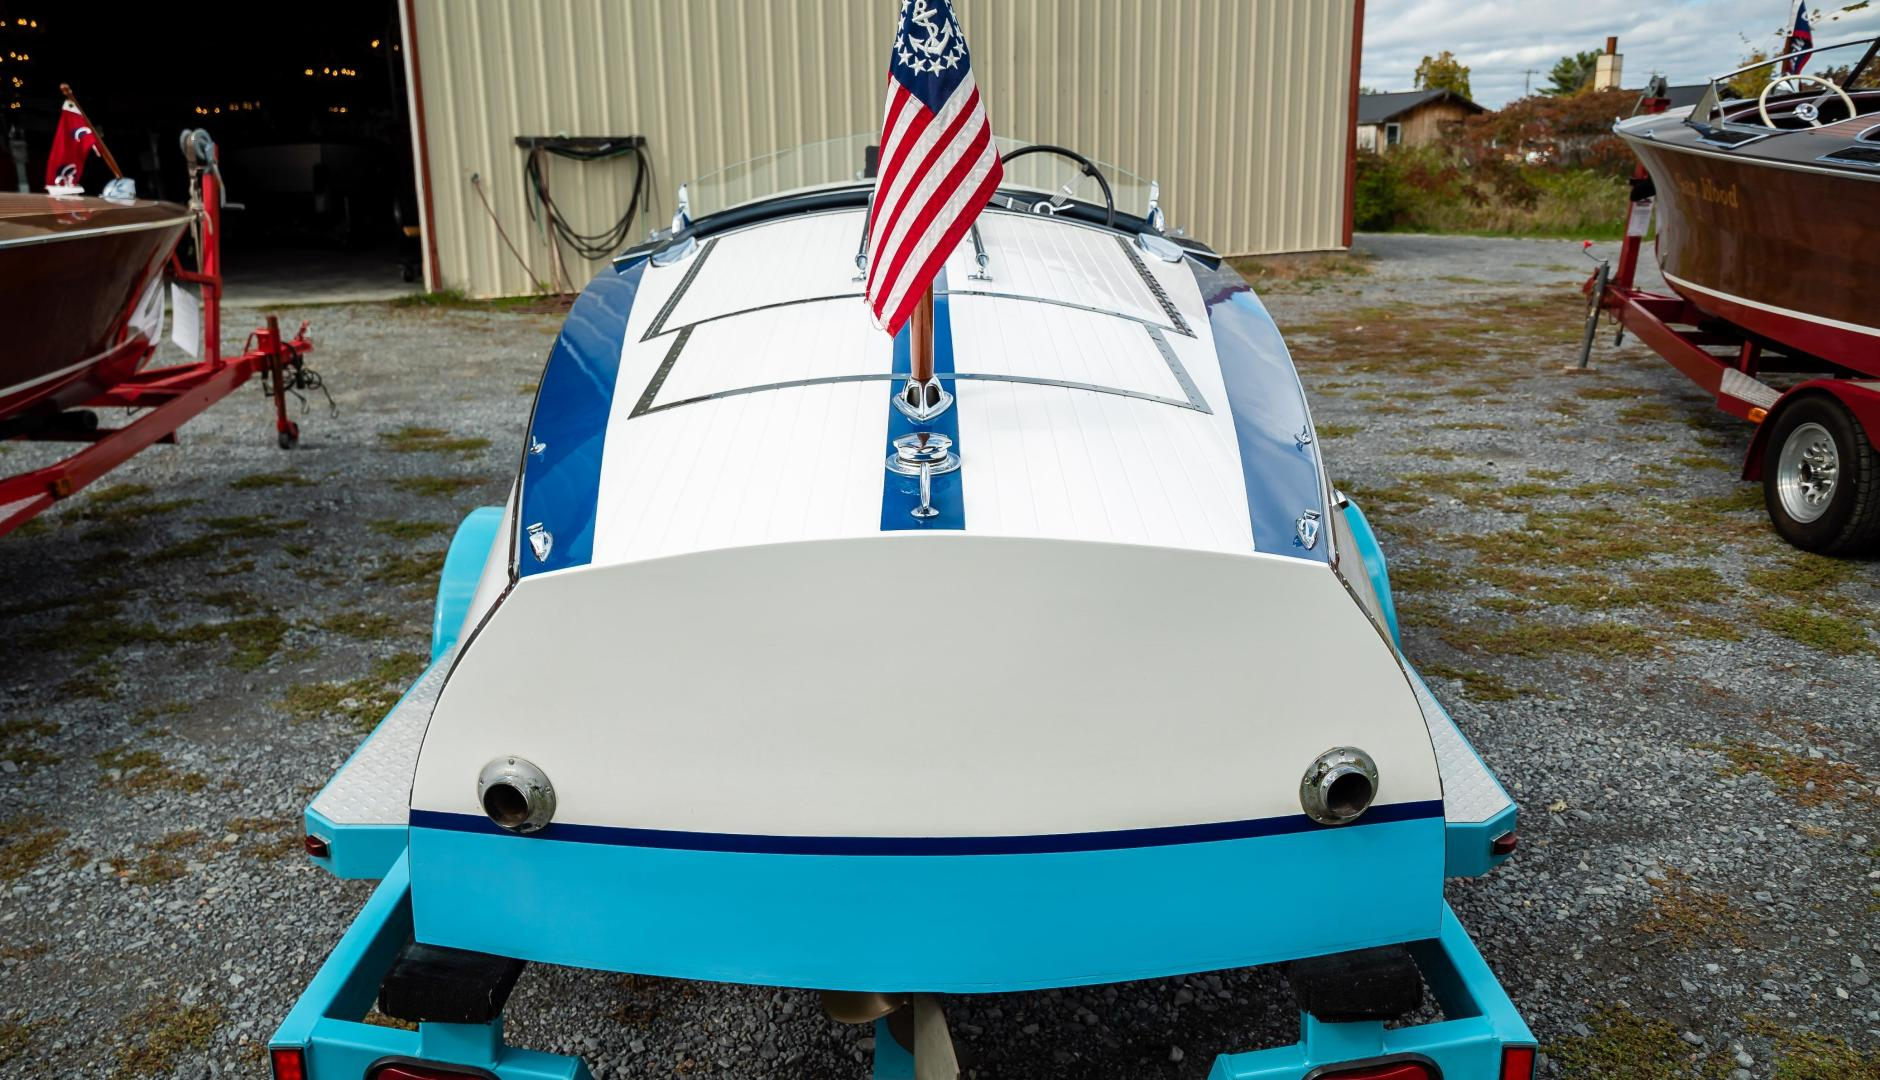 Chris-Craft-Special Race boat 1937 -Clayton-New York-United States-1546490 | Thumbnail